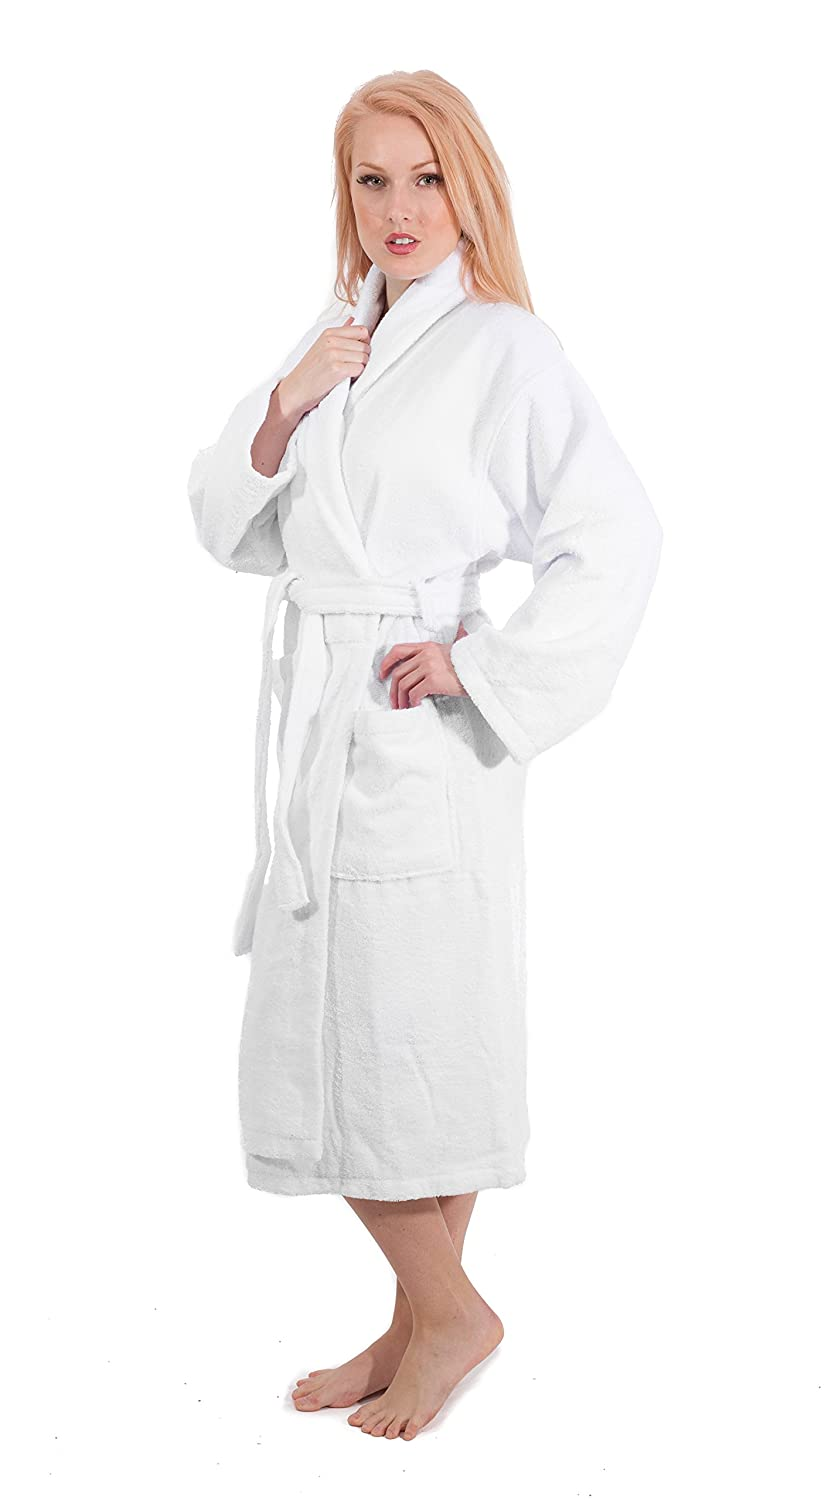 76605934f2 Luxury Terry Cotton Cloth Plush Bathrobe - Premium Cotton Hotel and Spa  Robes for Men and Women - Made with ...